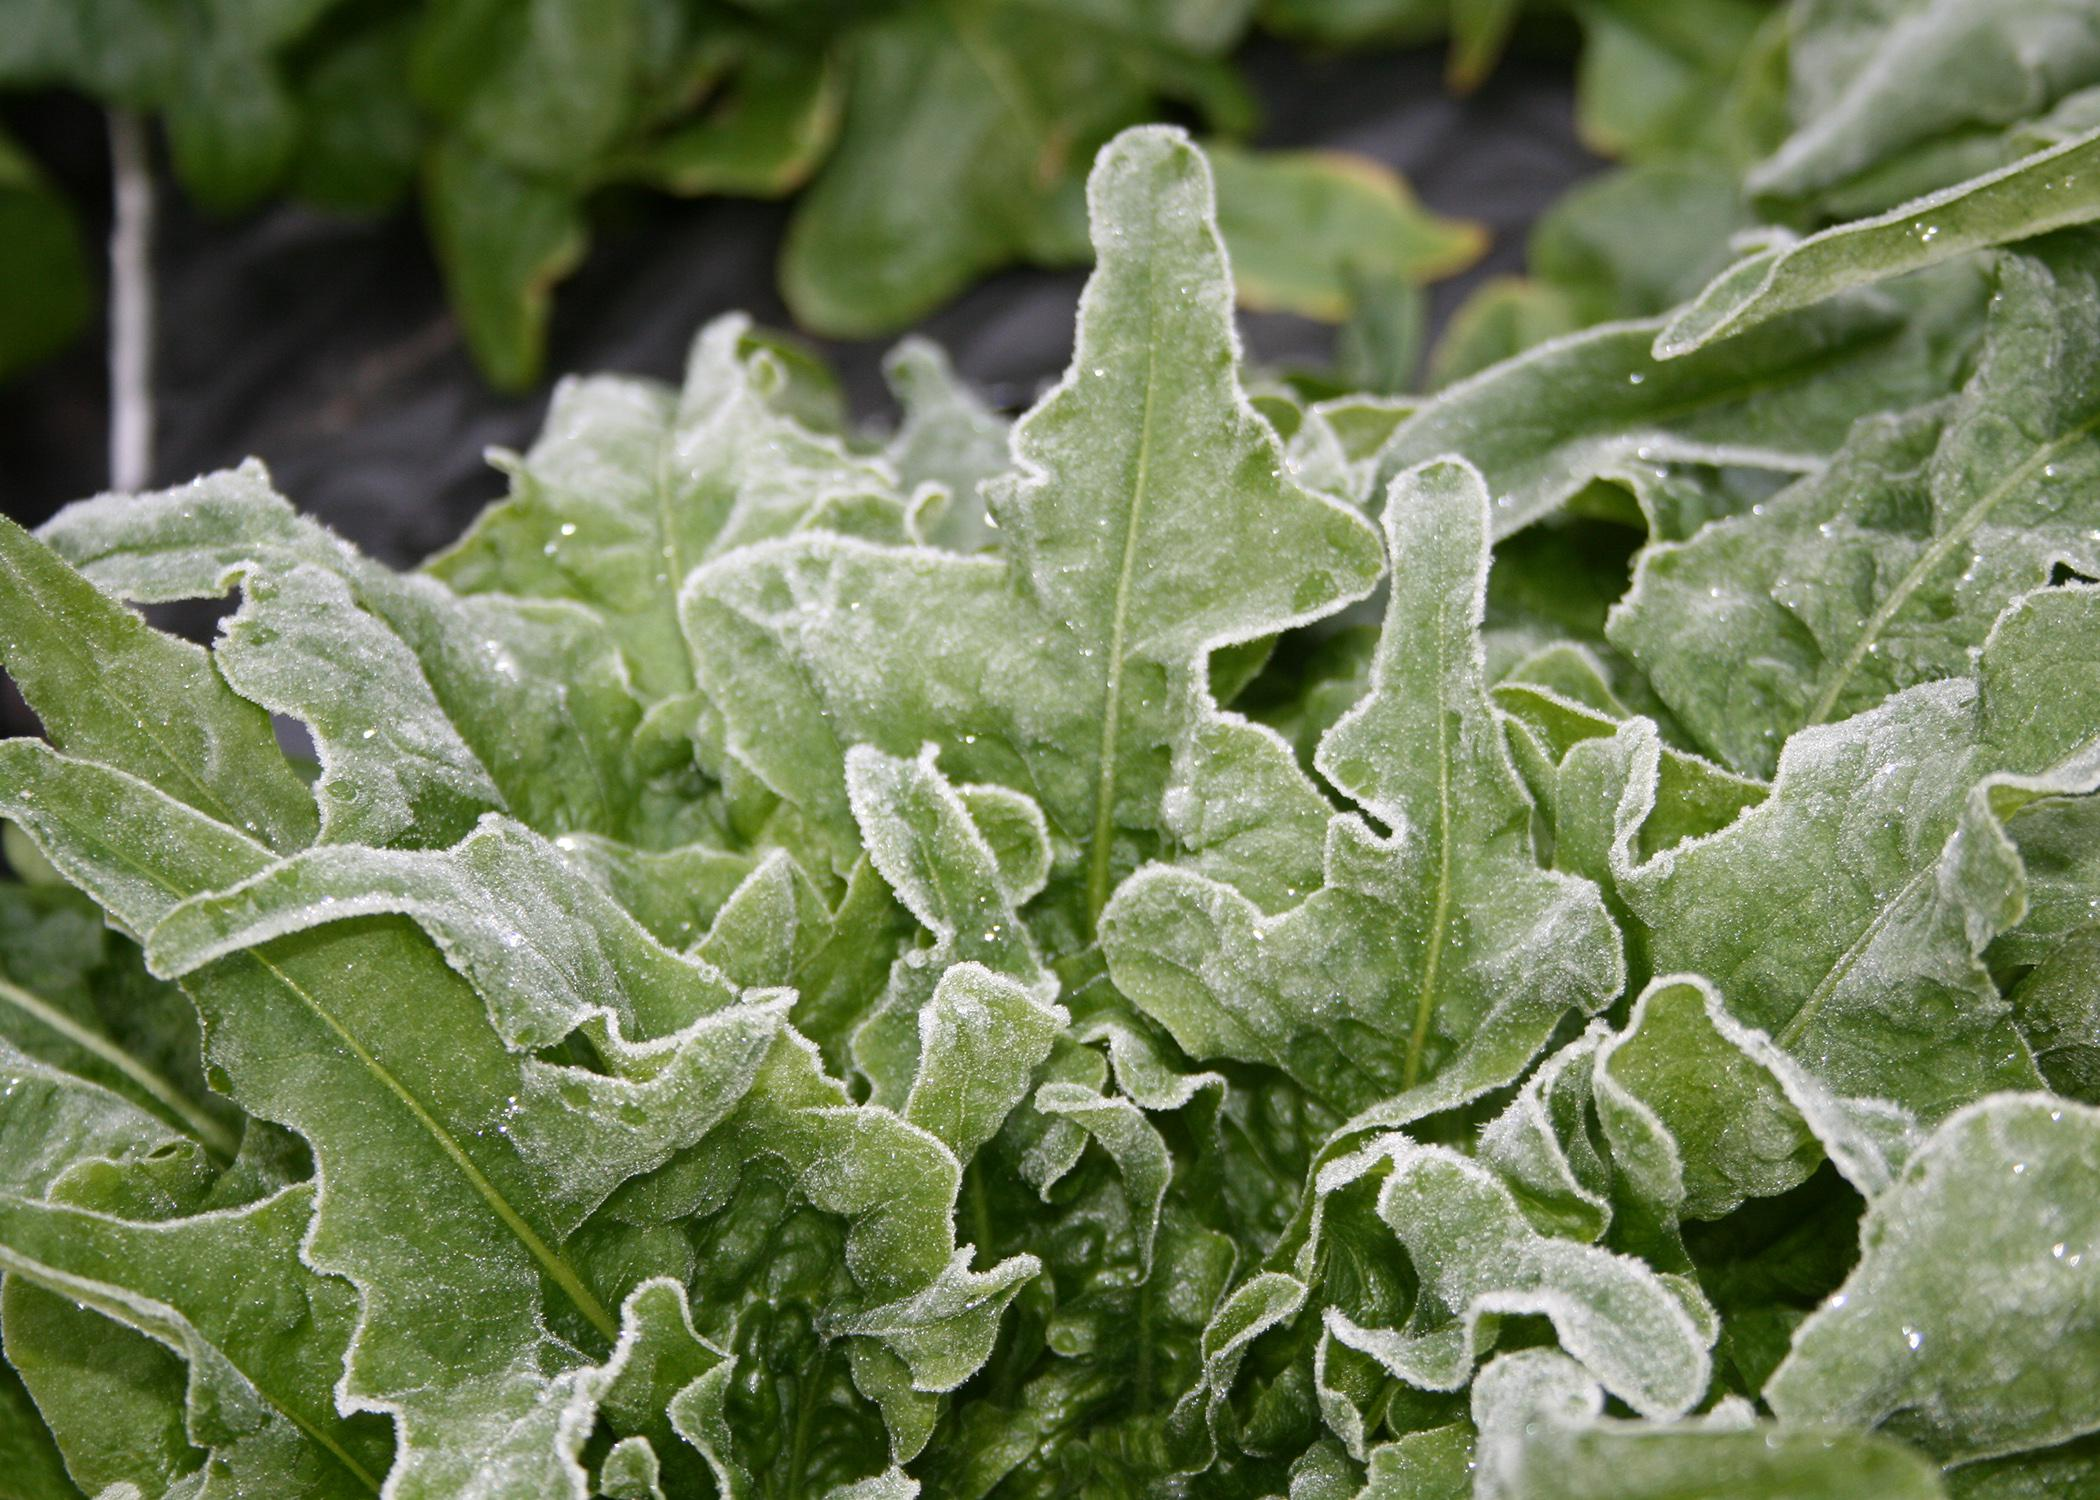 Frost covers the ruffled leaves of young lettuce.